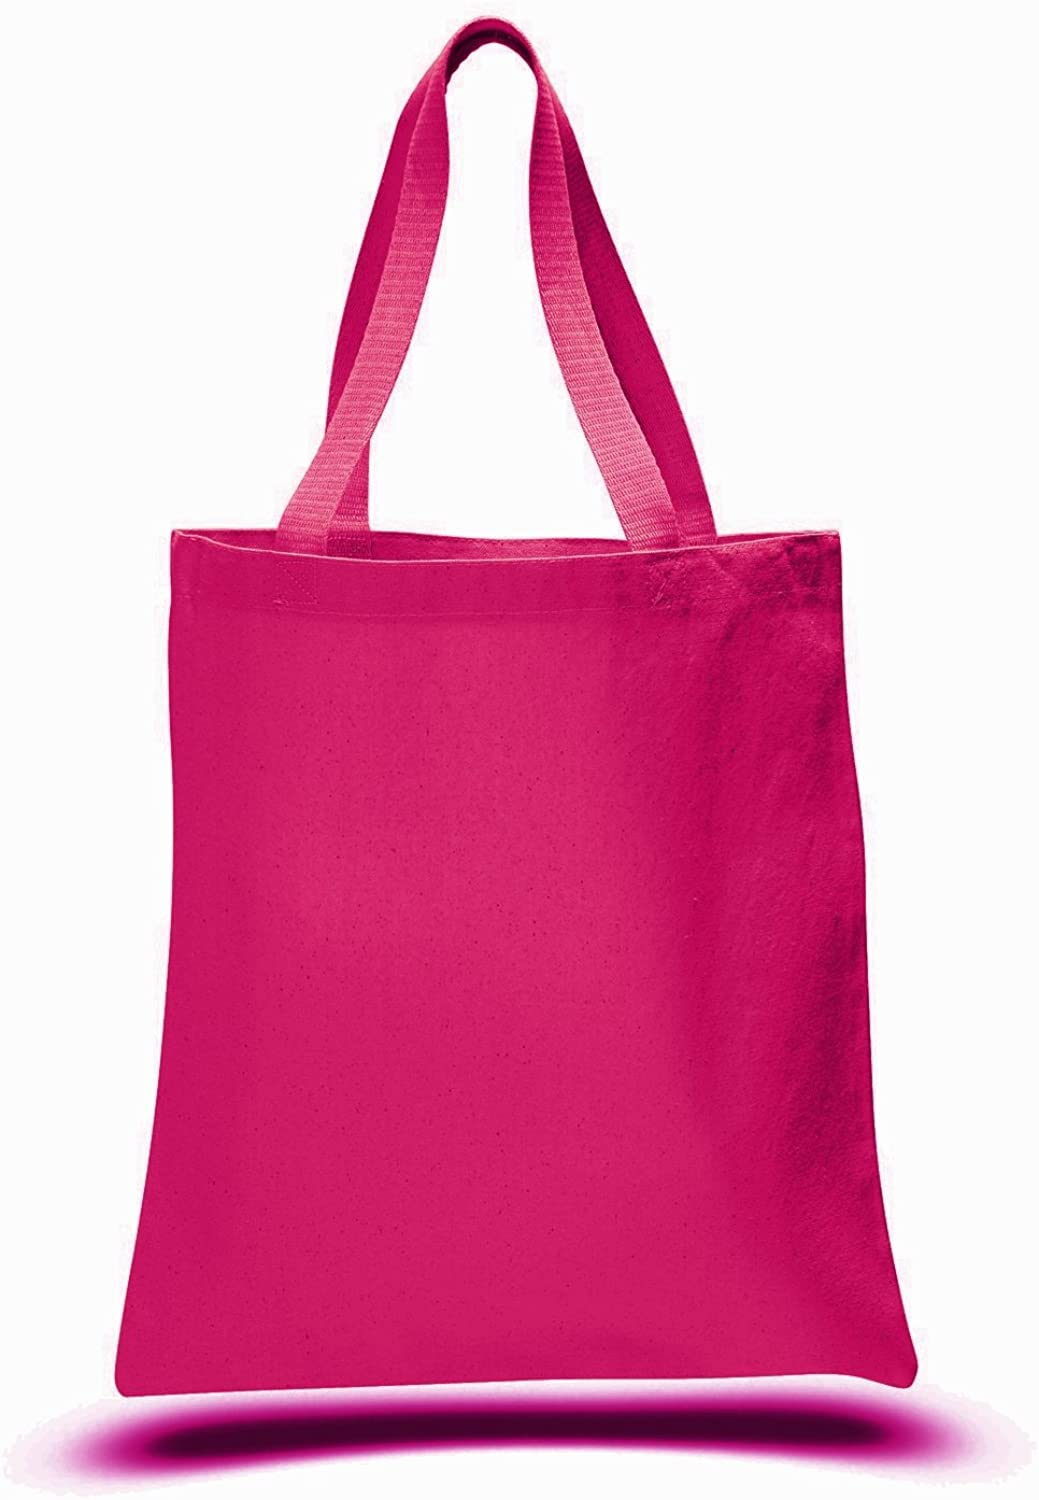 (12 Pack) 1 Dozen  Heavy Cotton Canvas Tote Bags (Hot Pink)